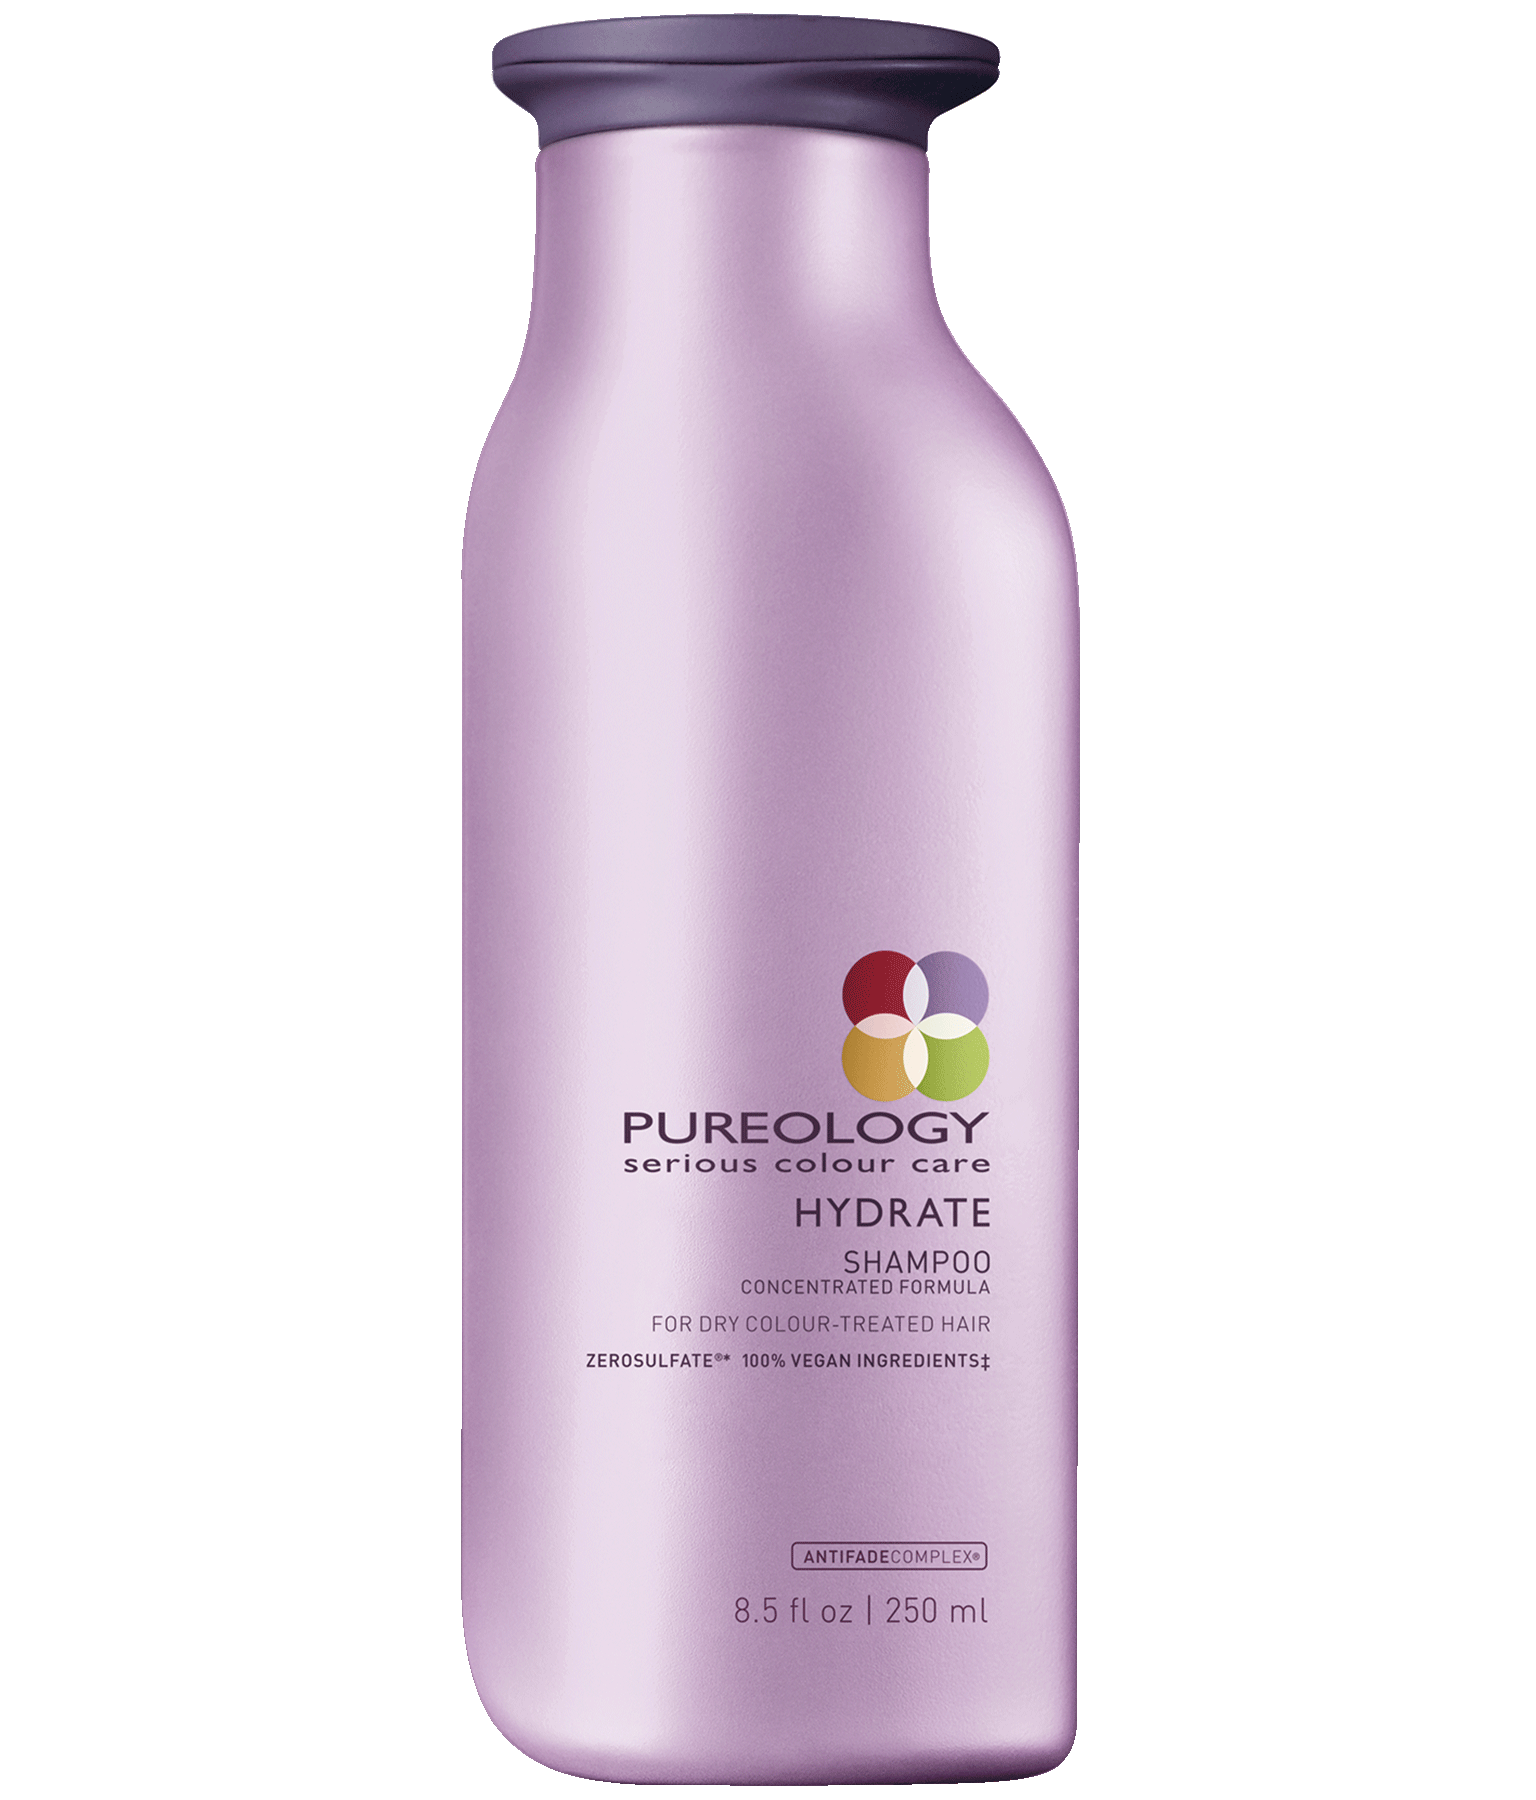 Hydrate Sulfate Free Shampoo For Dry Colored Hair Pureology